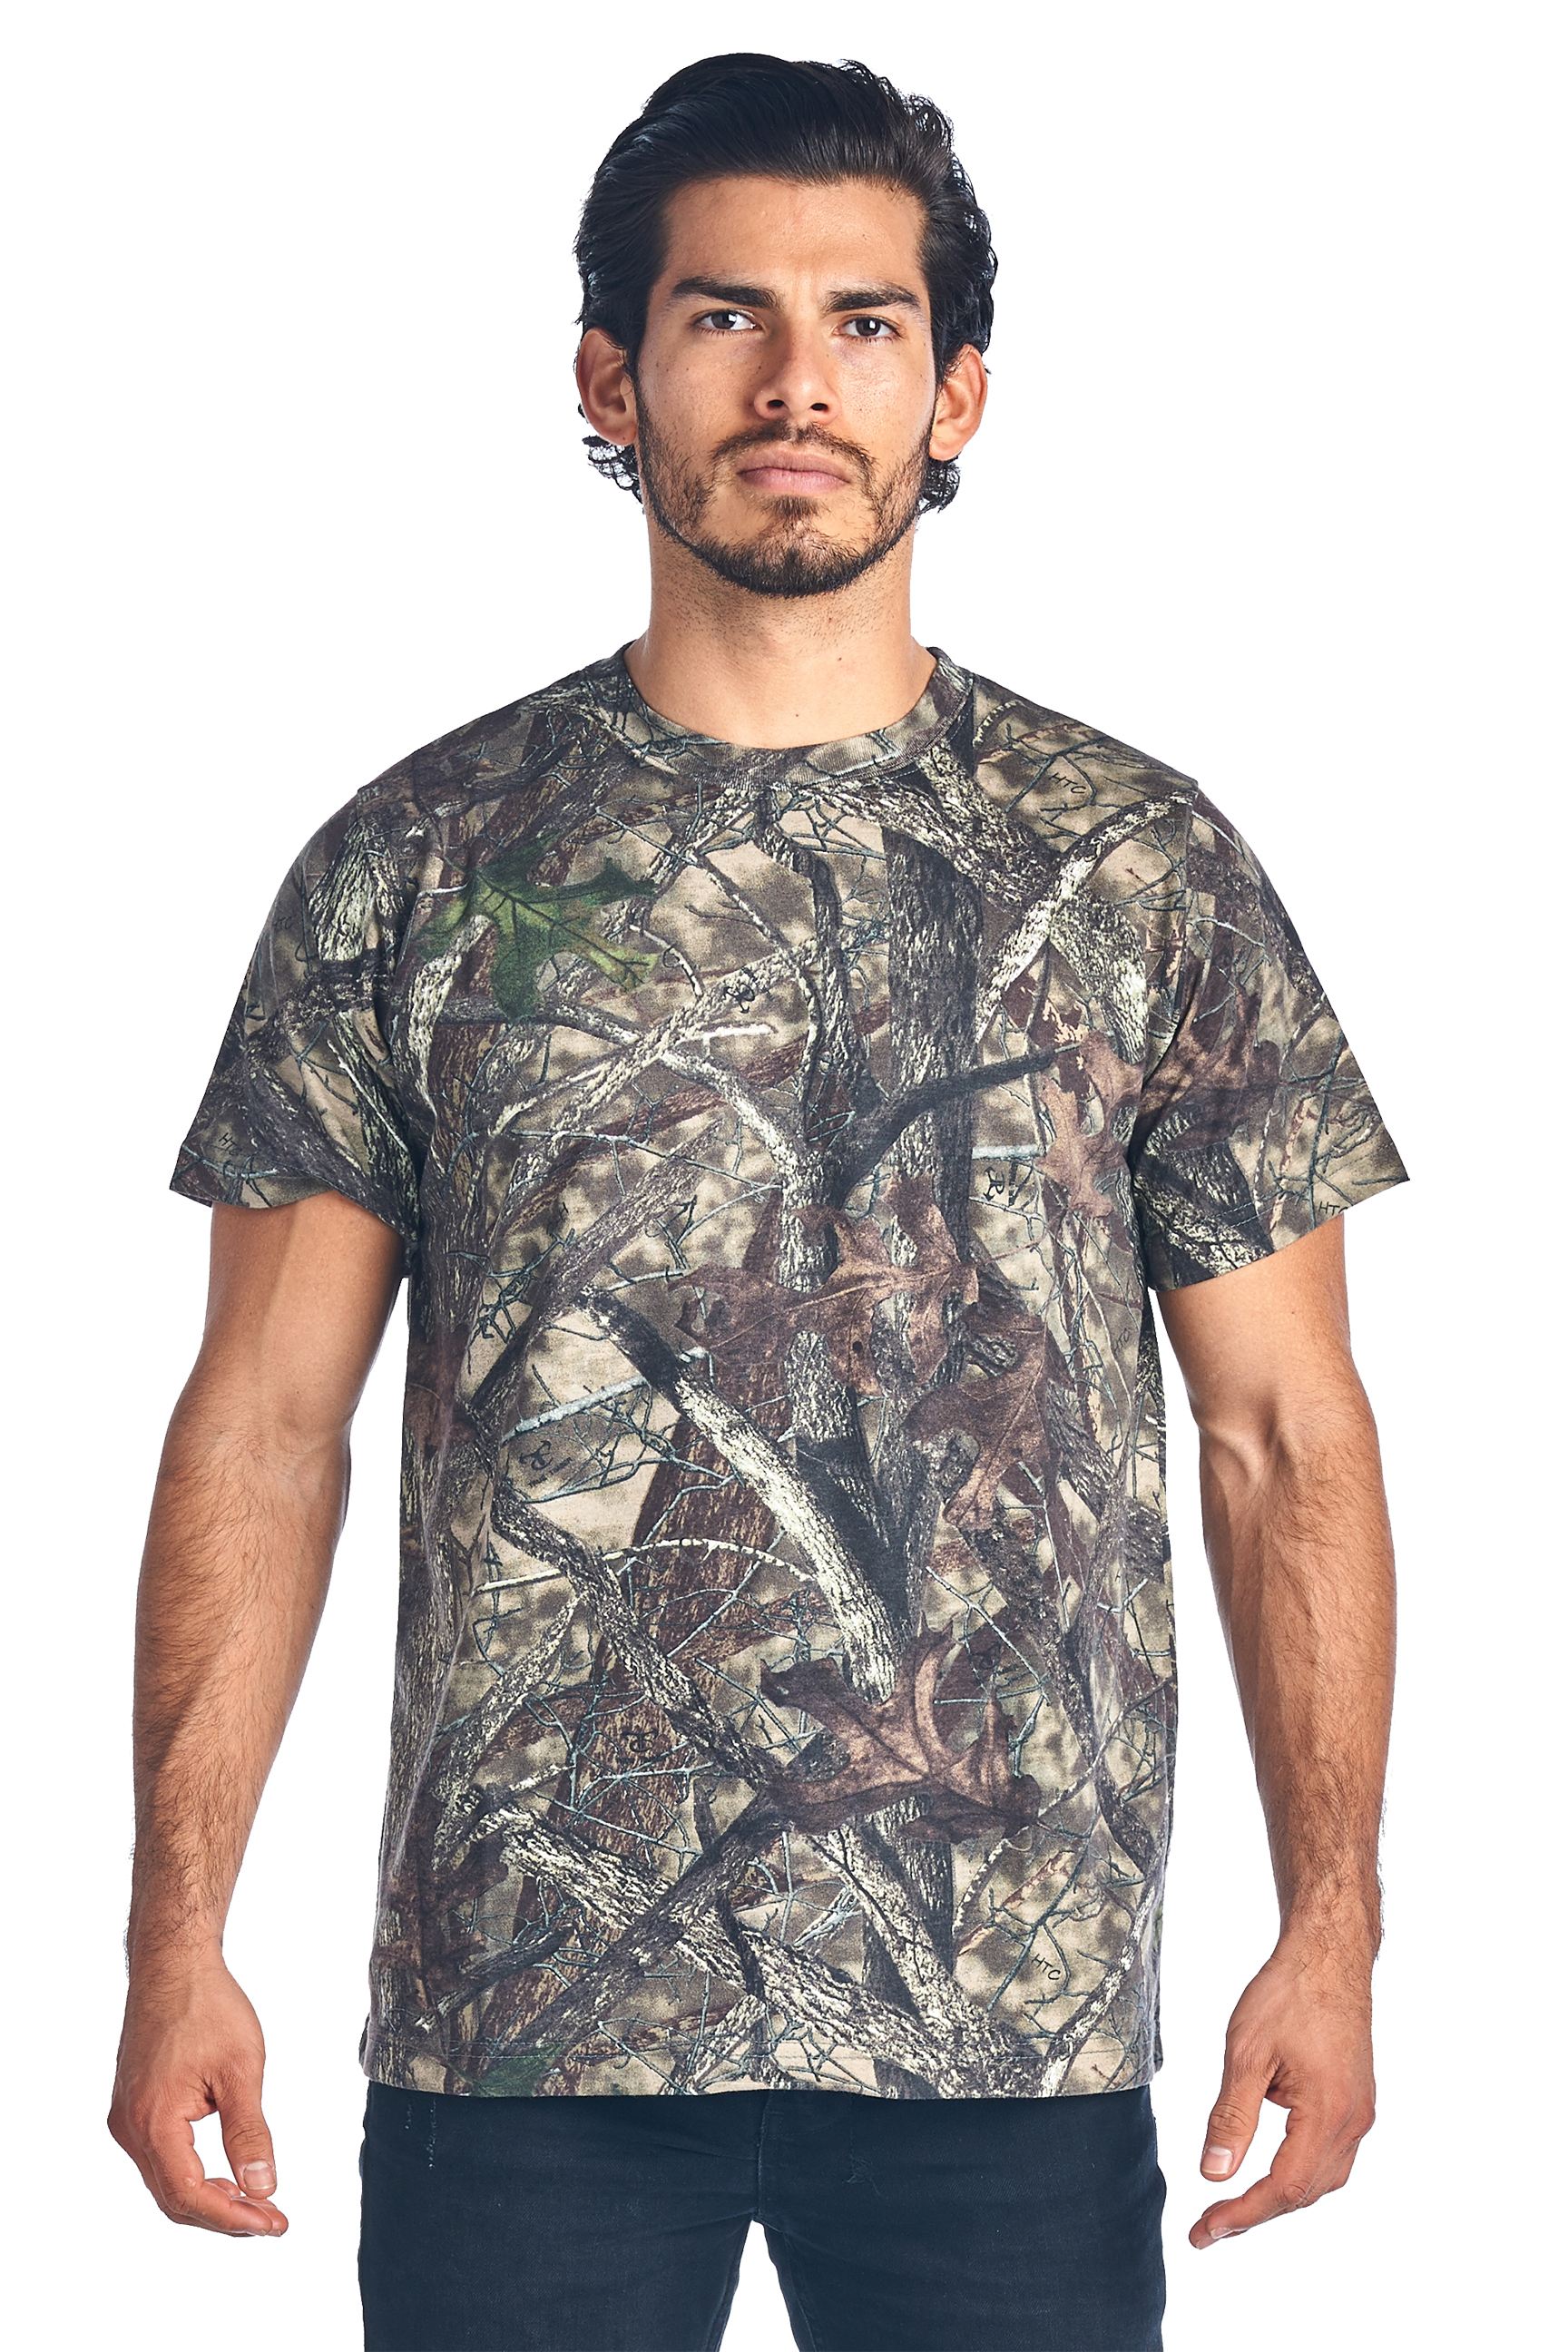 Camo Hunting Short Sleeve T-Shirt Camouflage Authentic True Timber S-5XL by